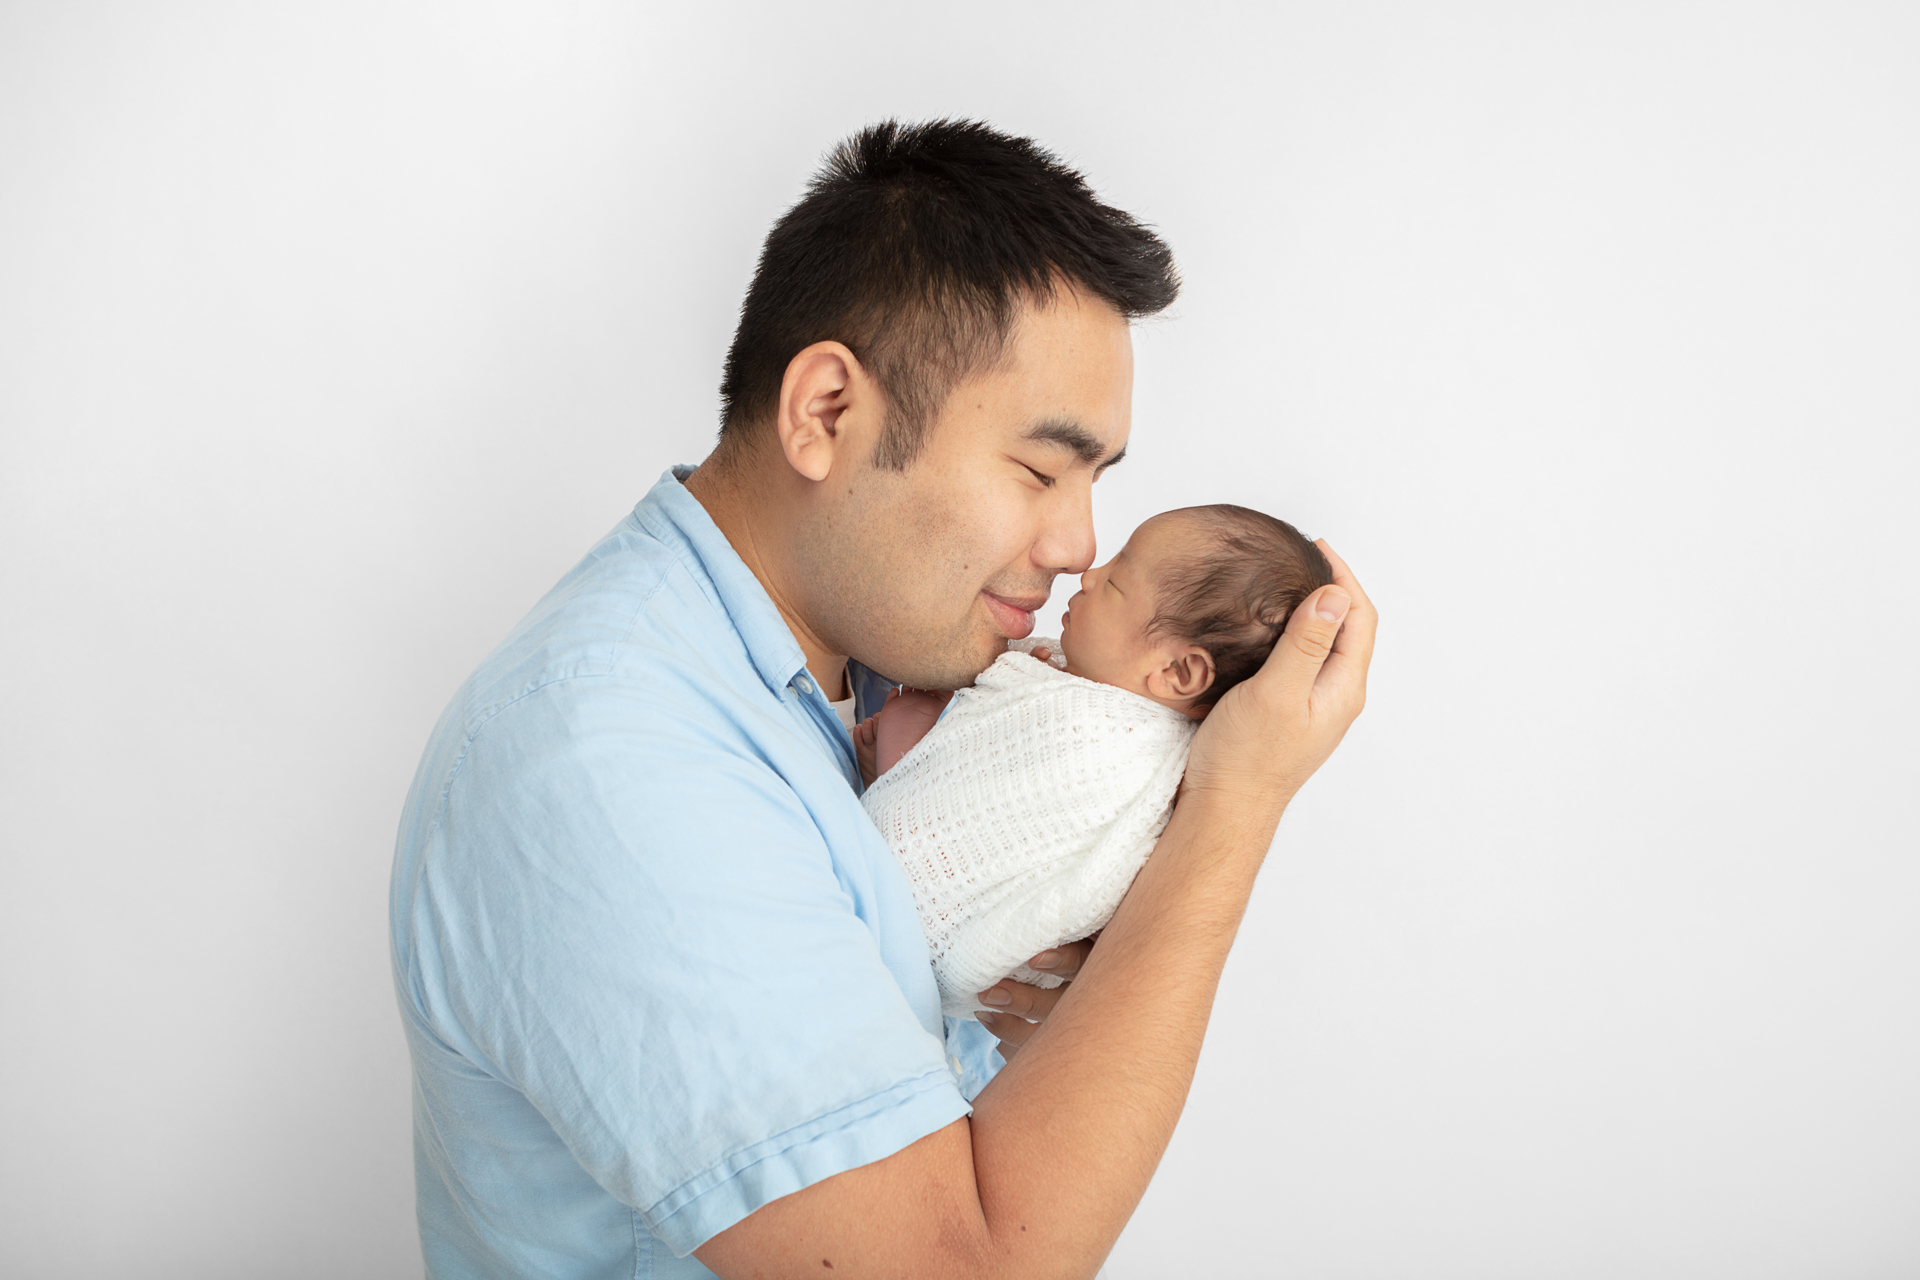 father with dark hair touching noses with his newborn baby girl who is wrapped in a white waffle weave blanket